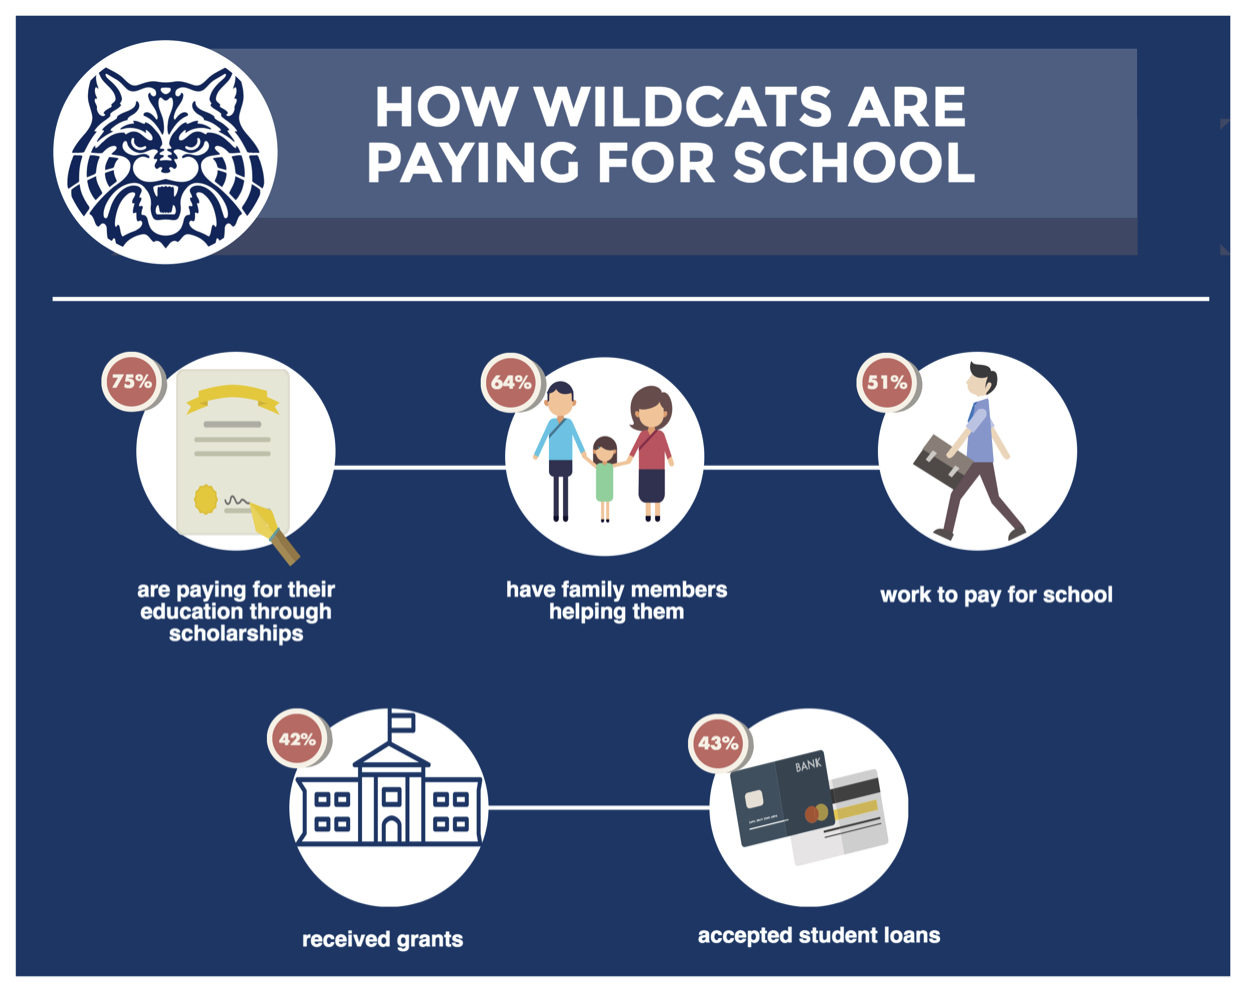 How Wildcats Are Paying for Their Education - CatPulse 9/20/16 Survey